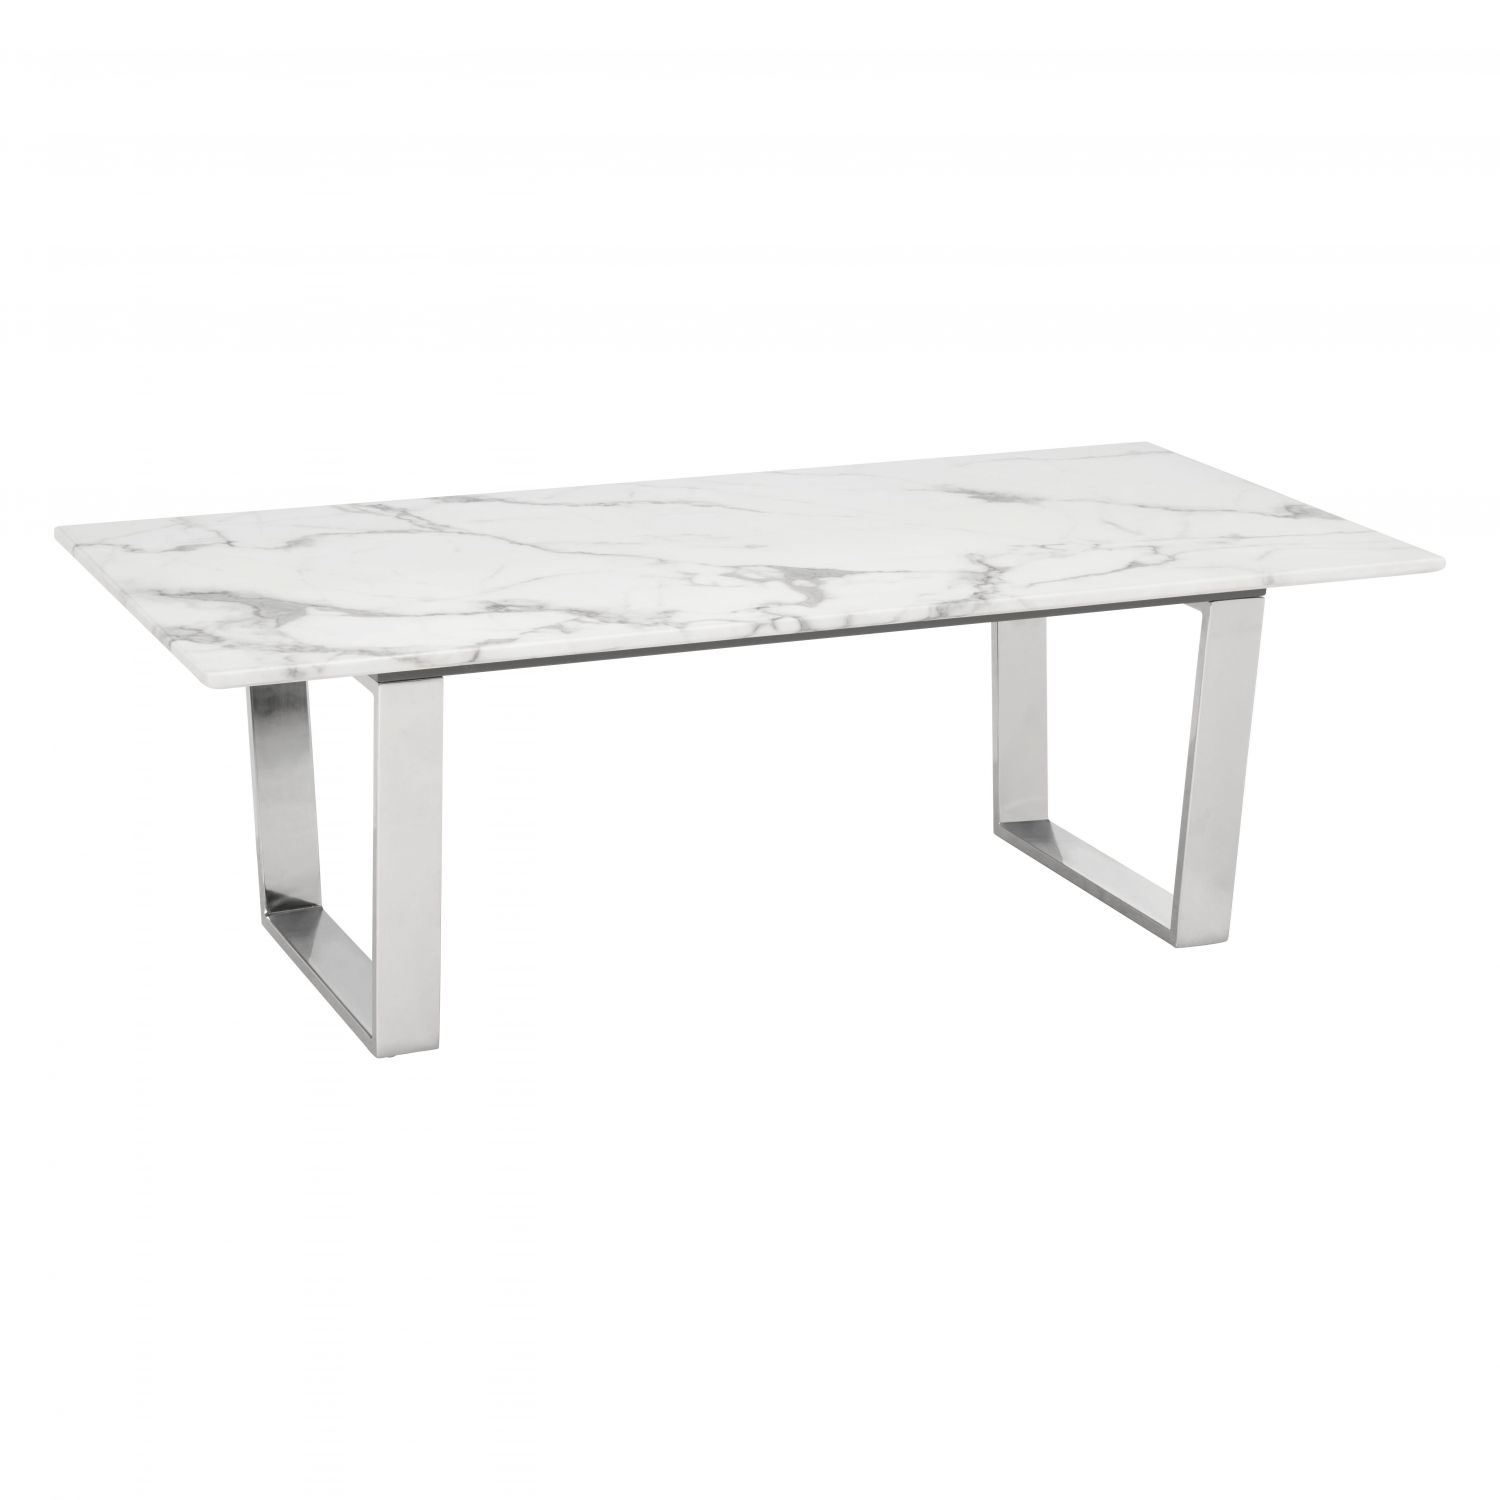 Atlas Coffee Table Stone Brushed Stainless Steel 100708 Zuo Modern Contemporary Afw